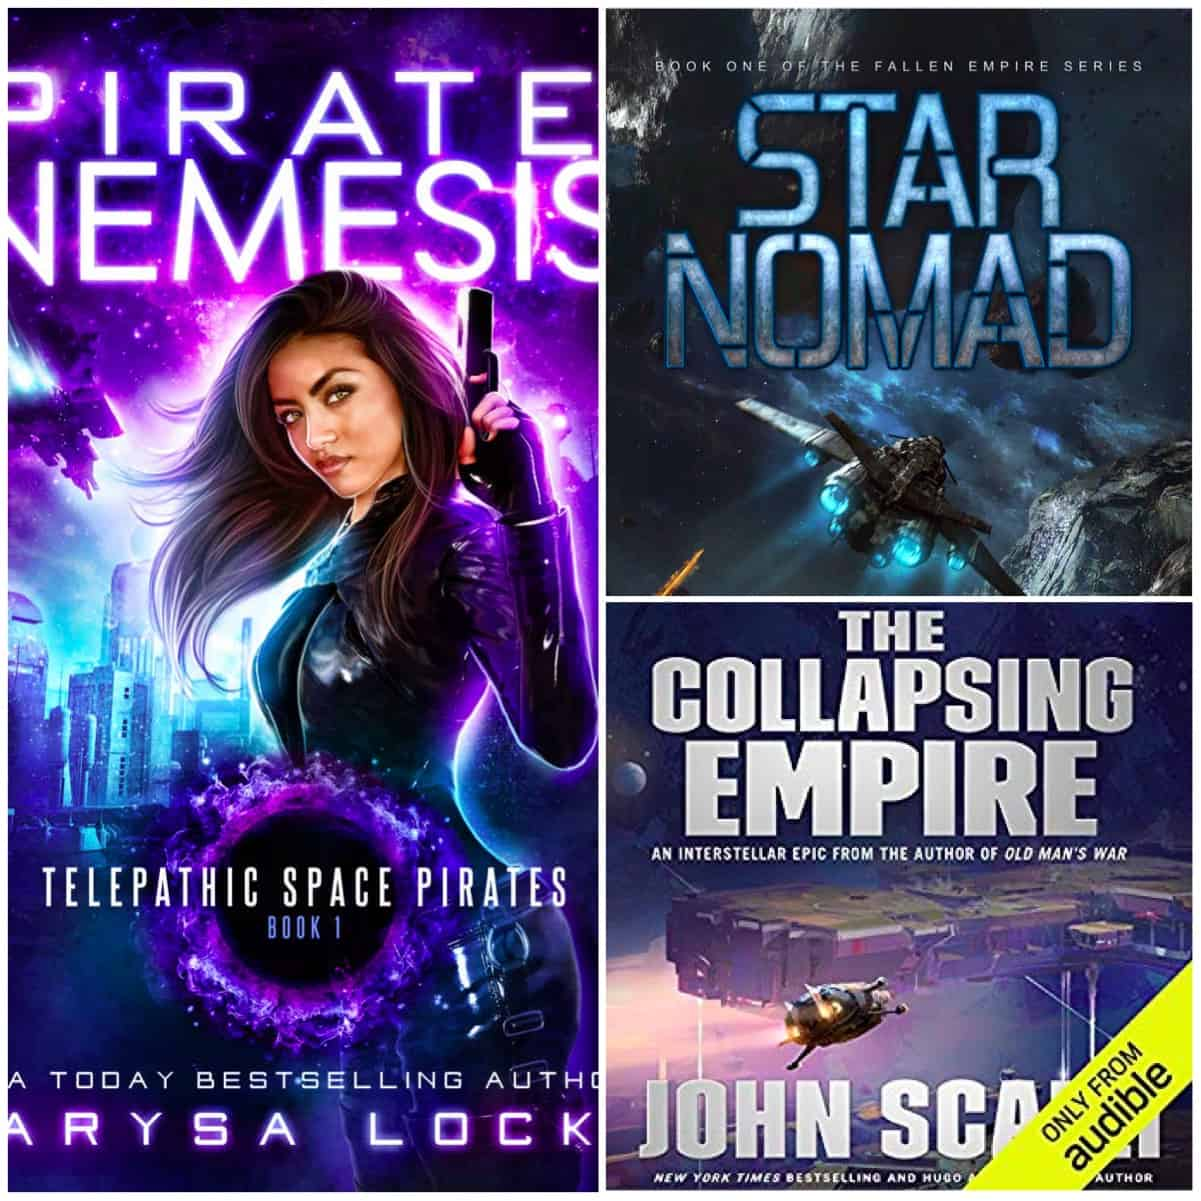 Lots of awesome sci-fi this month from Carysa Locke, Lindsay Buroker, and John Scalzi!